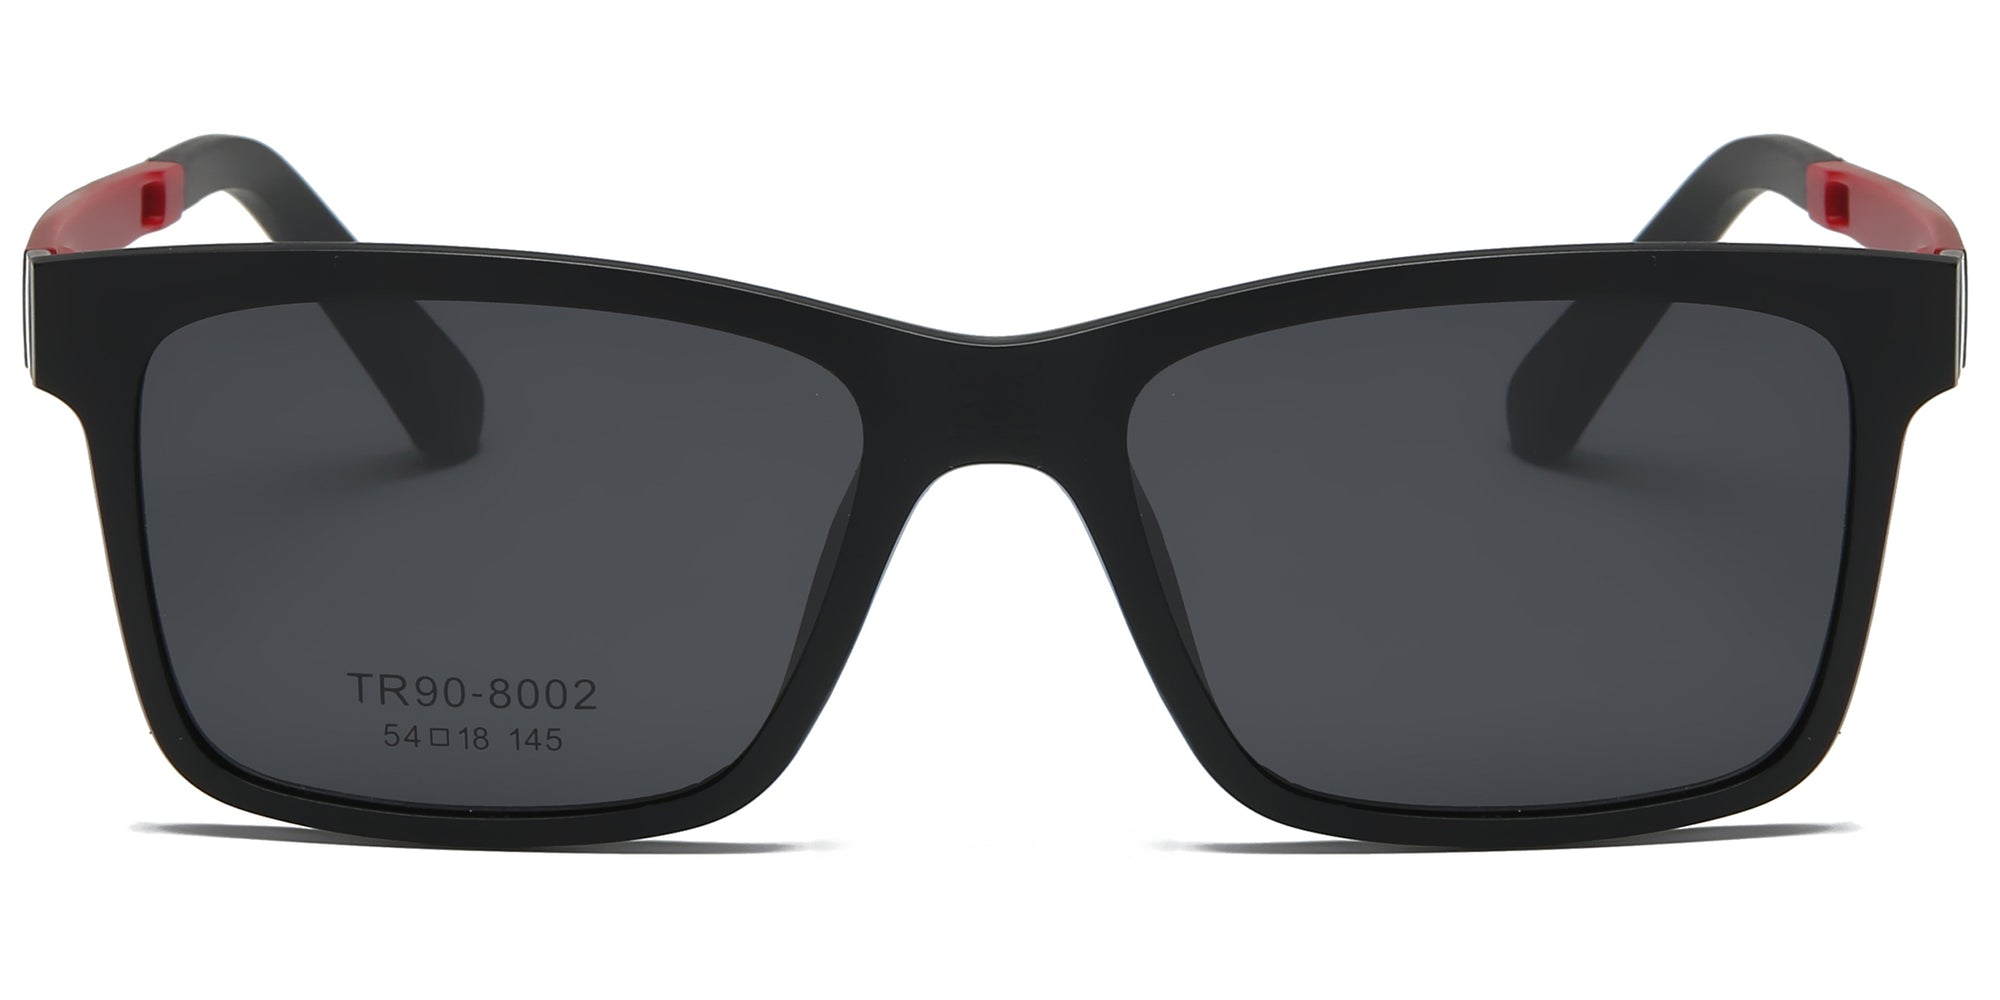 P8002 - Classic Square Clip-On Fashion Sunglasses - Iris Fashion Inc. | Wholesale Sunglasses and Glasses